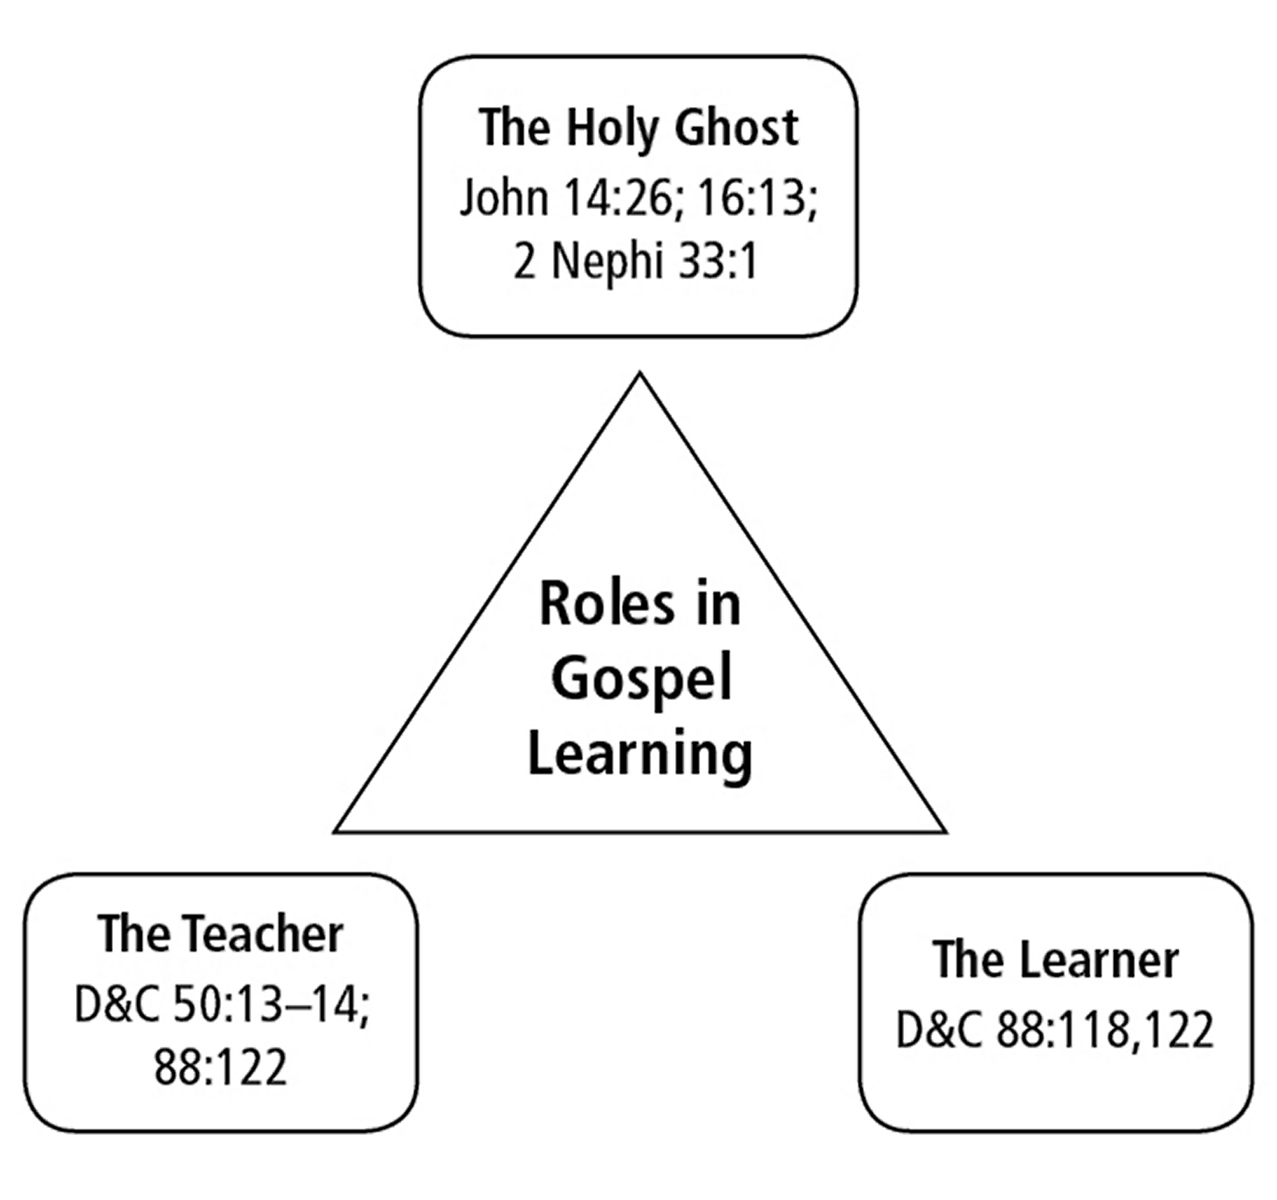 Roles In Gospel Learning